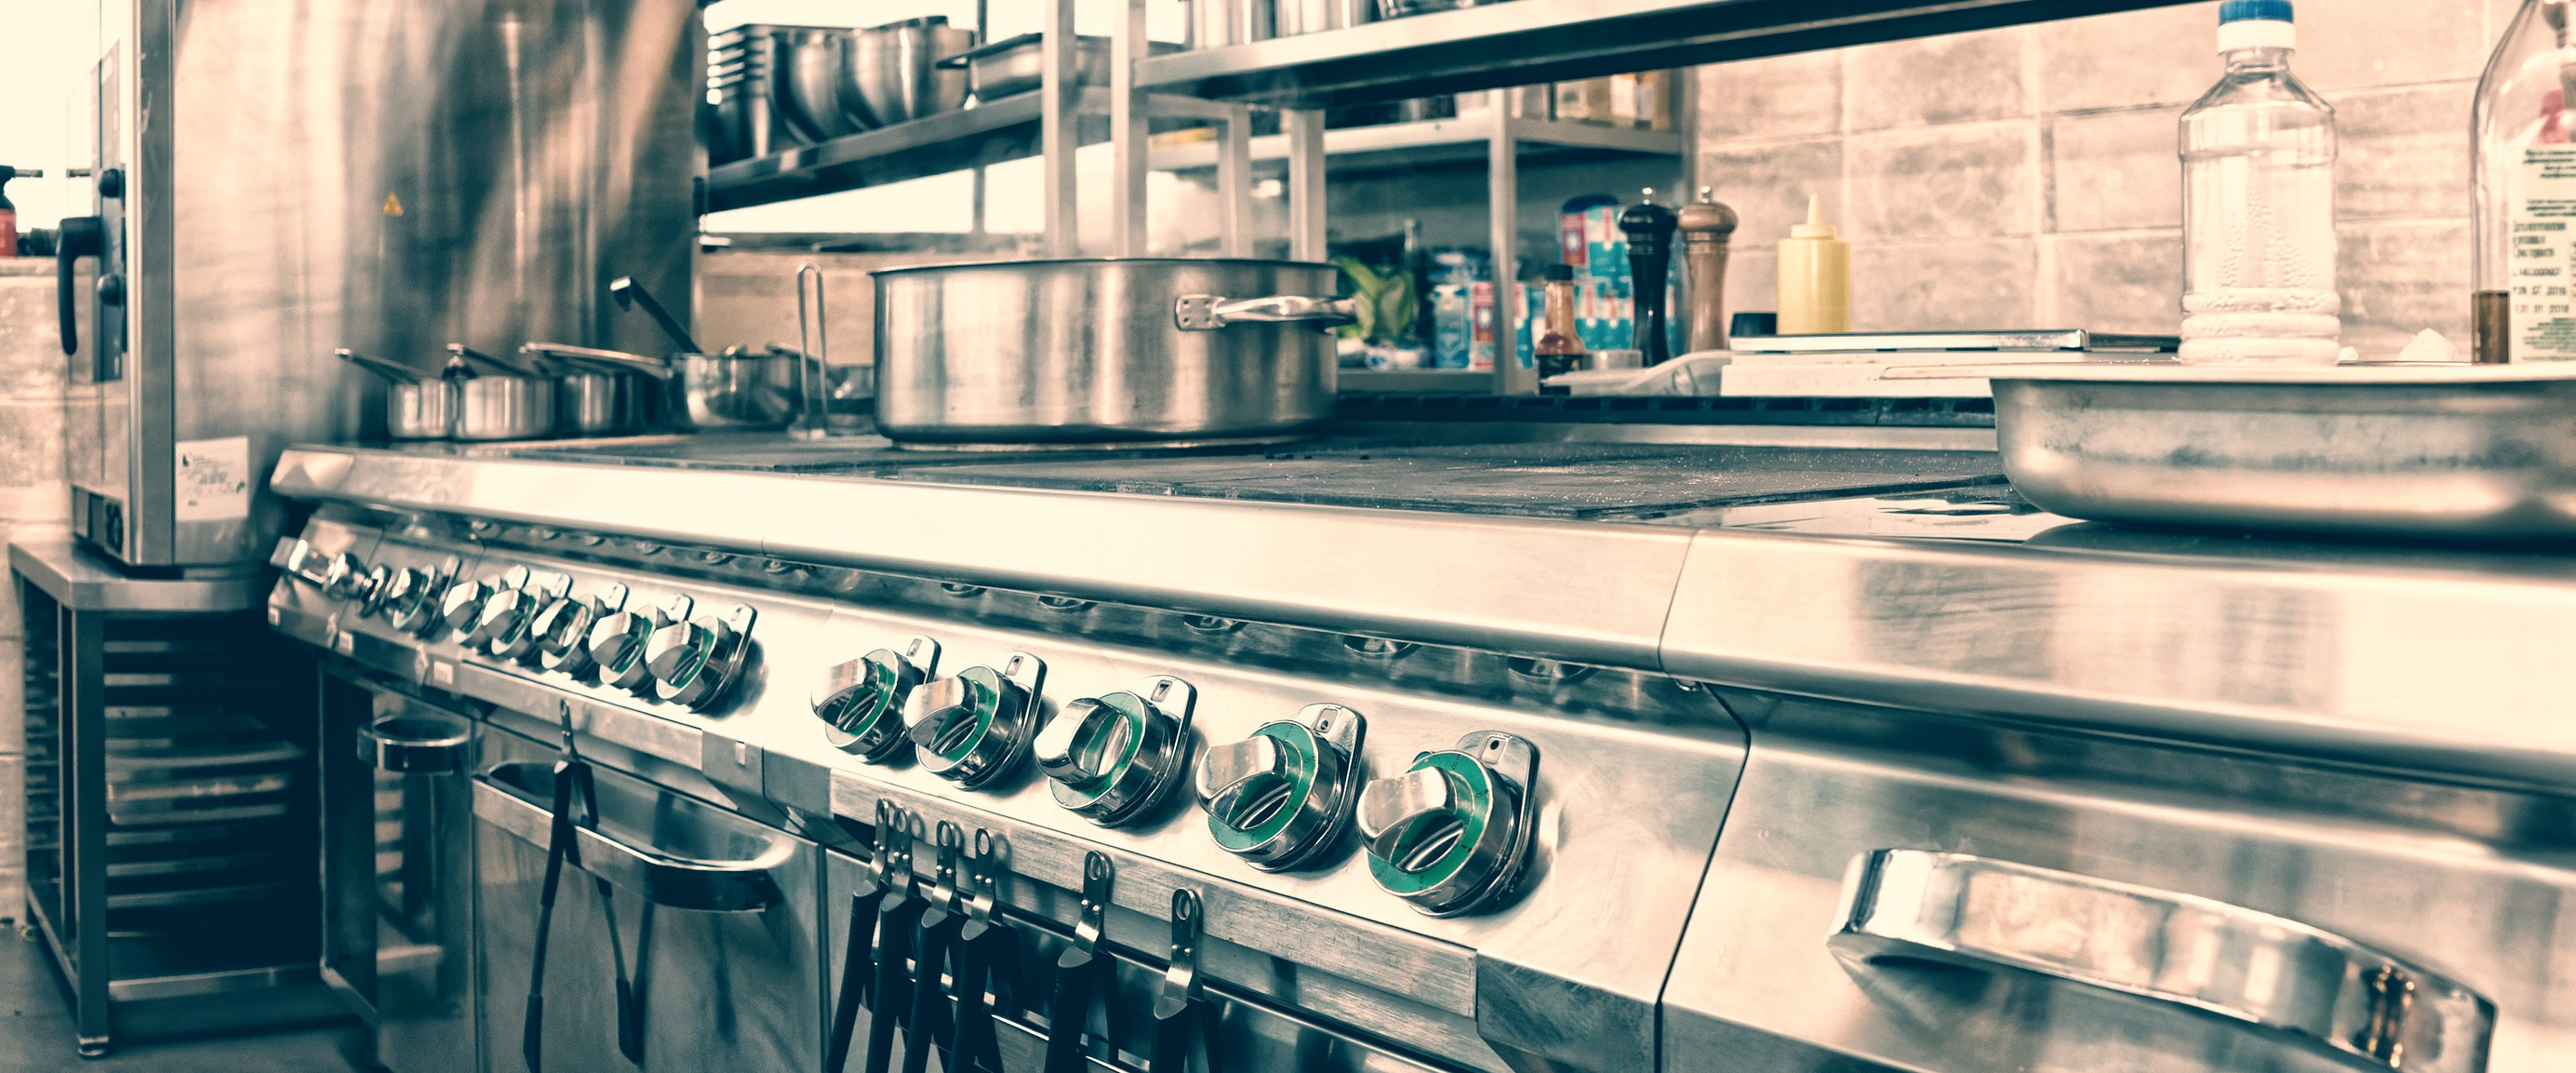 get ready for gumbo - Commercial Kitchen Equipment